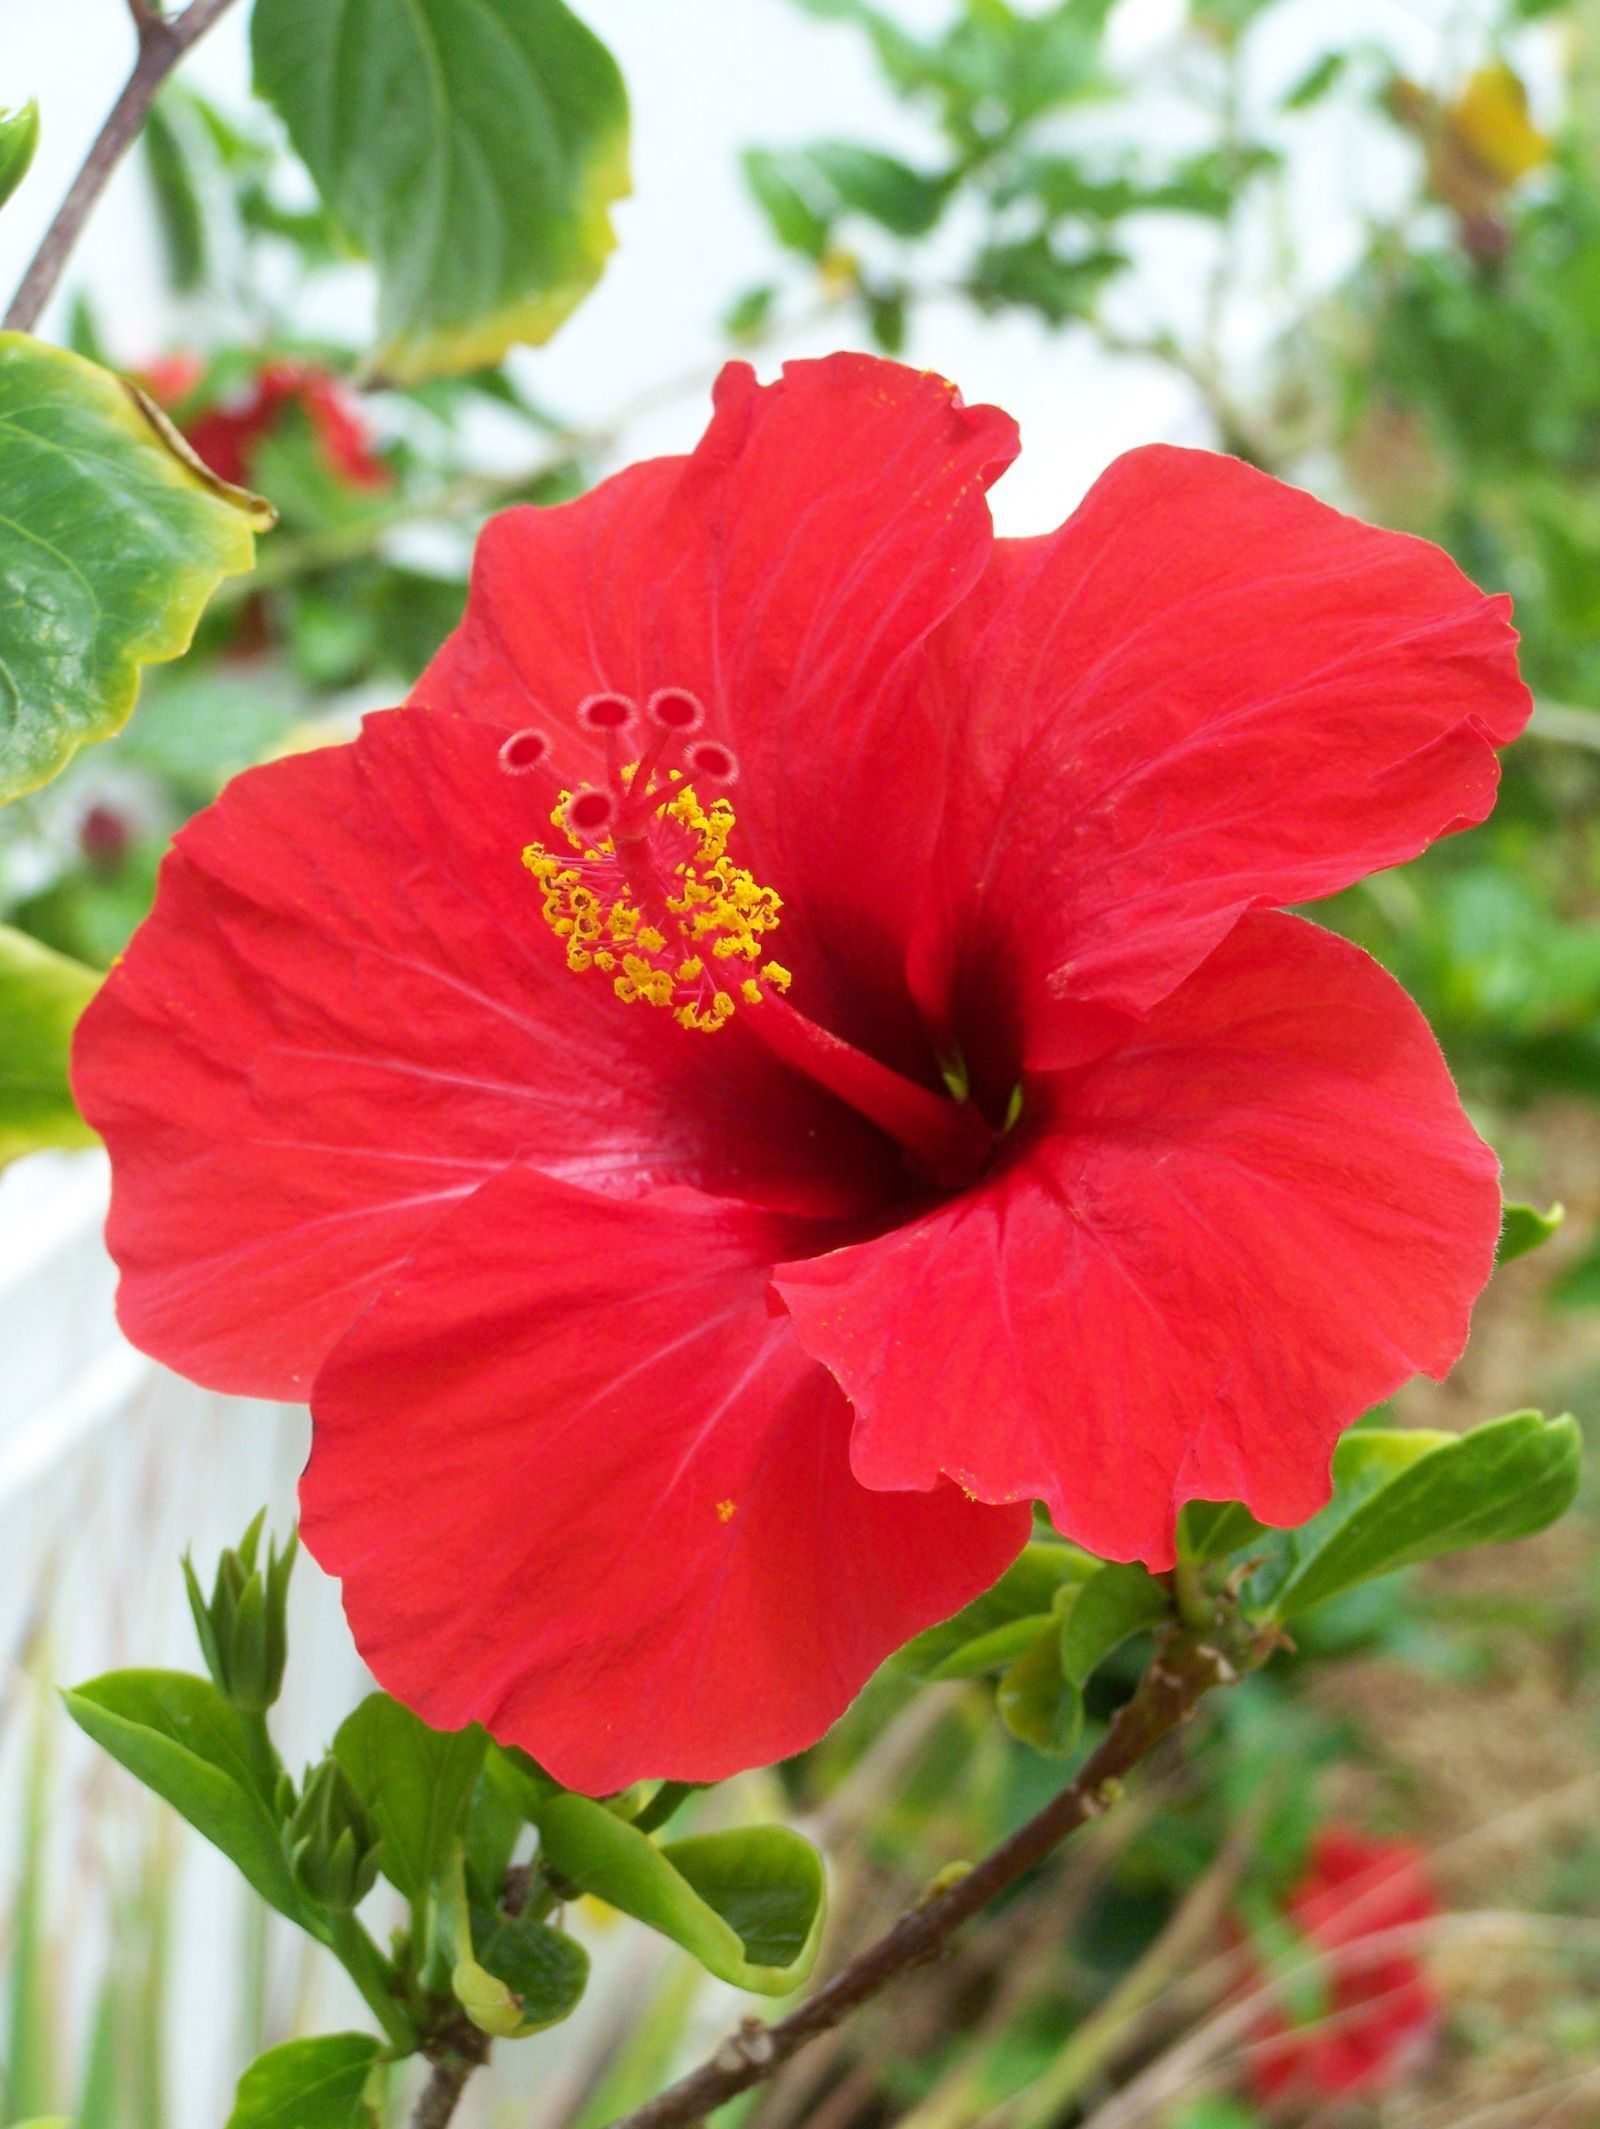 Rare and delicate beauty hibiscus photos de vacances de antilles rare and delicate beauty hibiscus photos de vacances de antilles location martinique izmirmasajfo